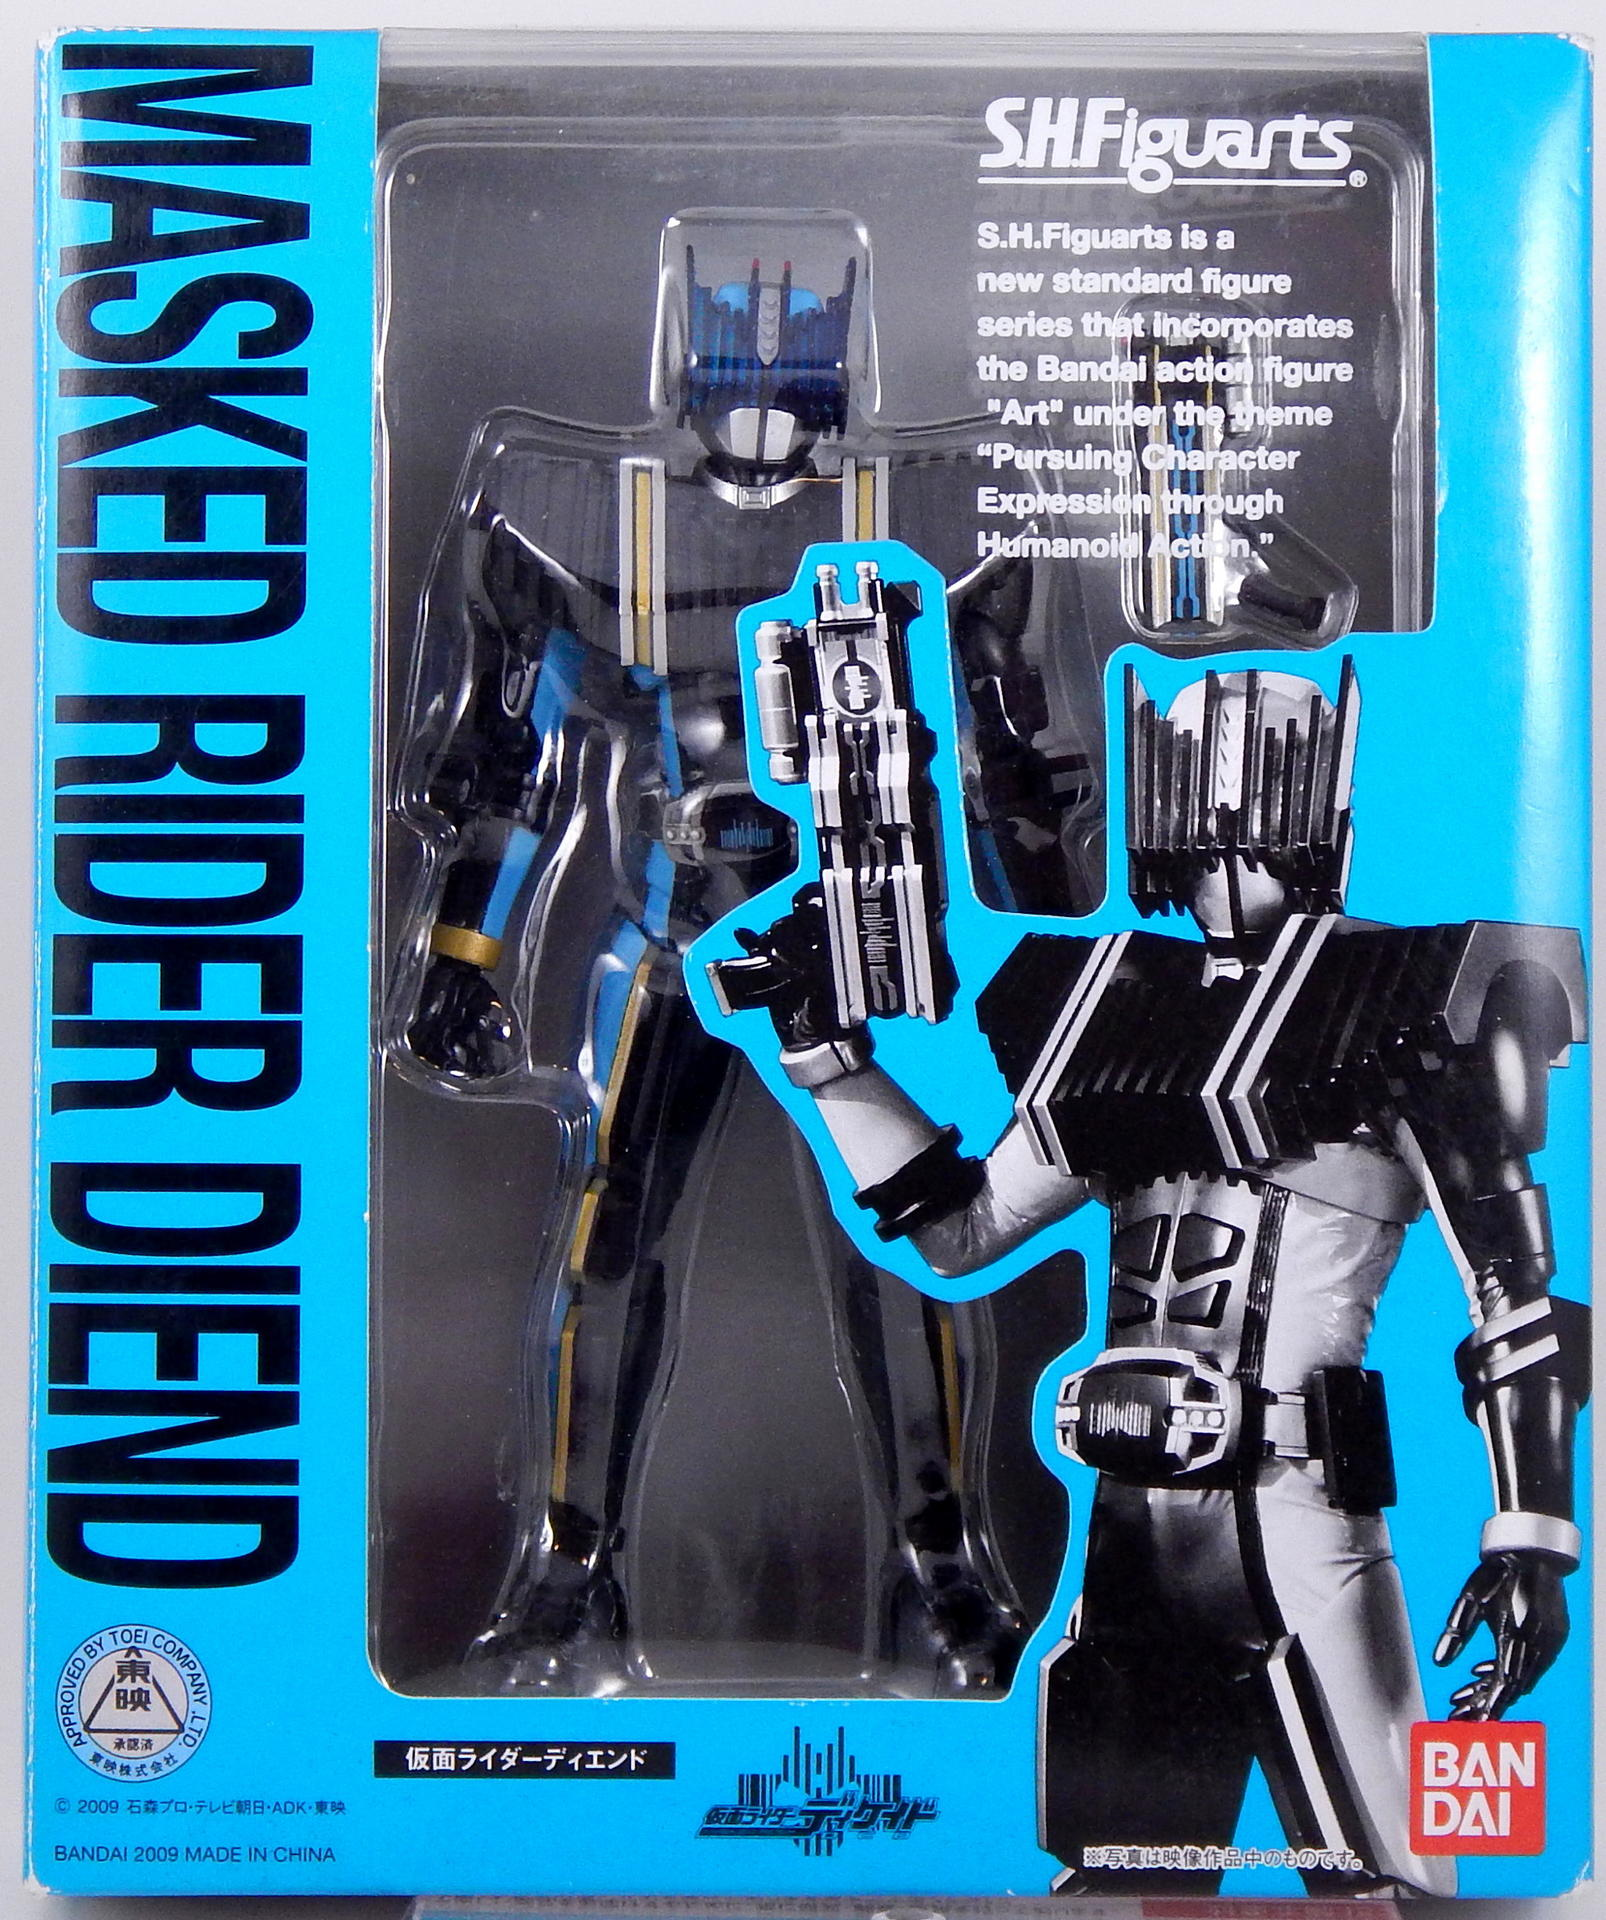 S.H. Figuarts Kamen Rider Diend Gallery And Review By Ryan